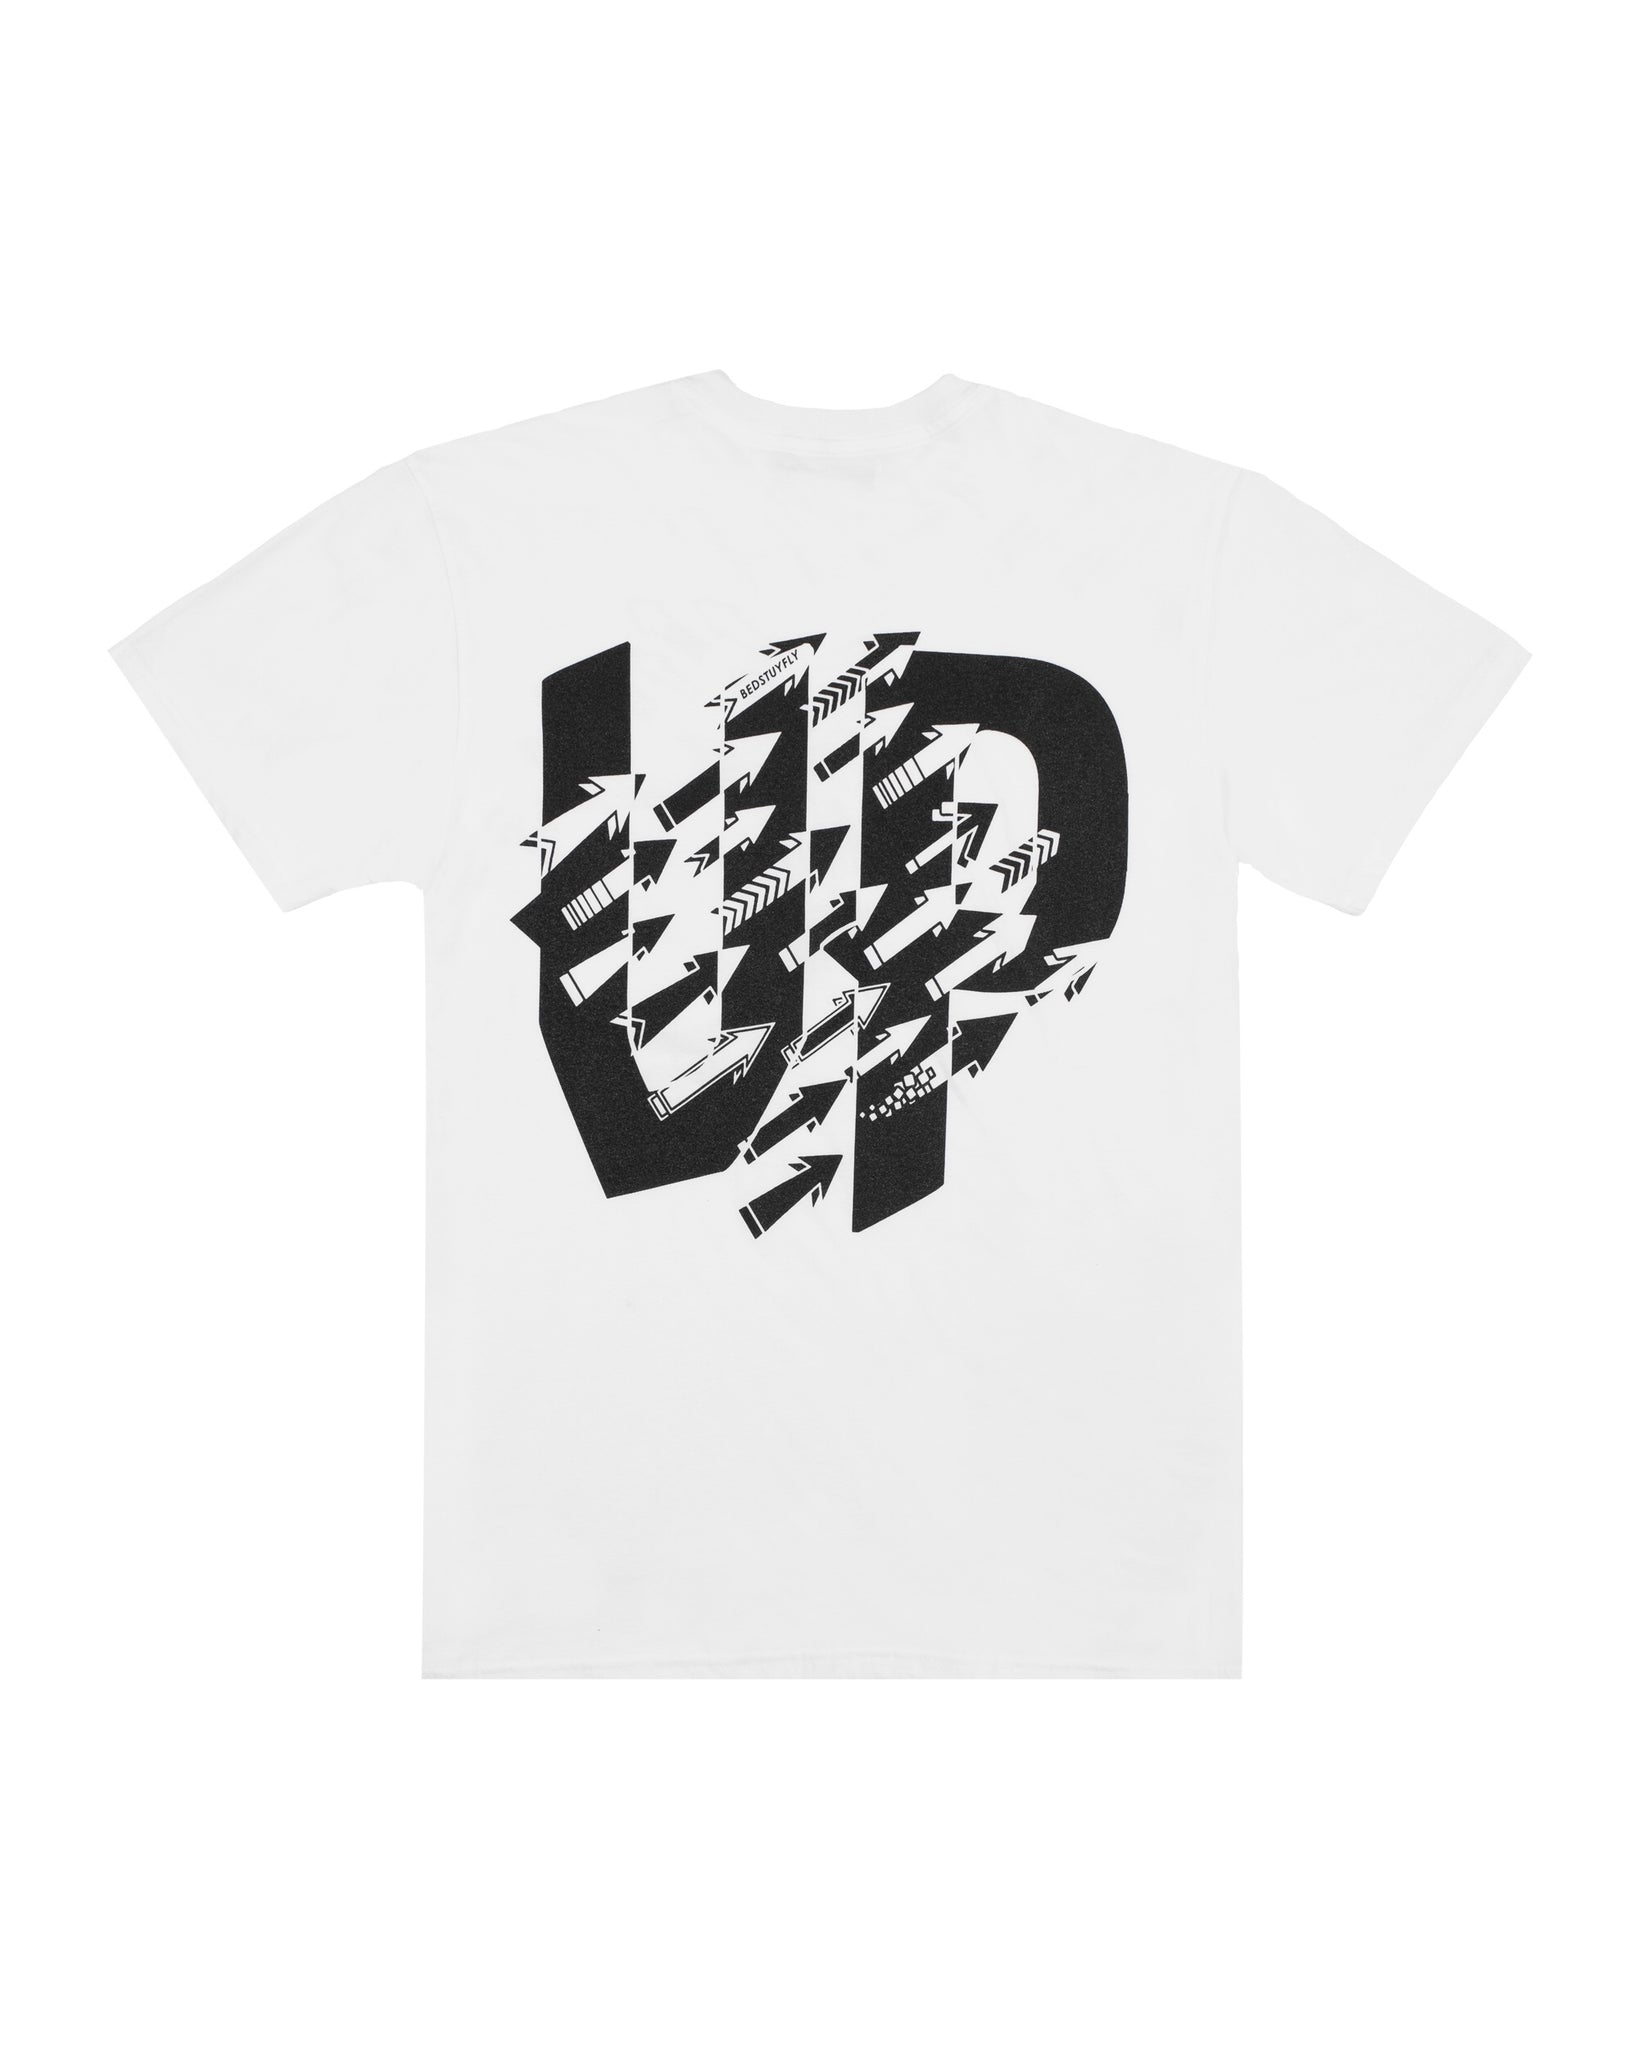 UP T-Shirt  (Wht)